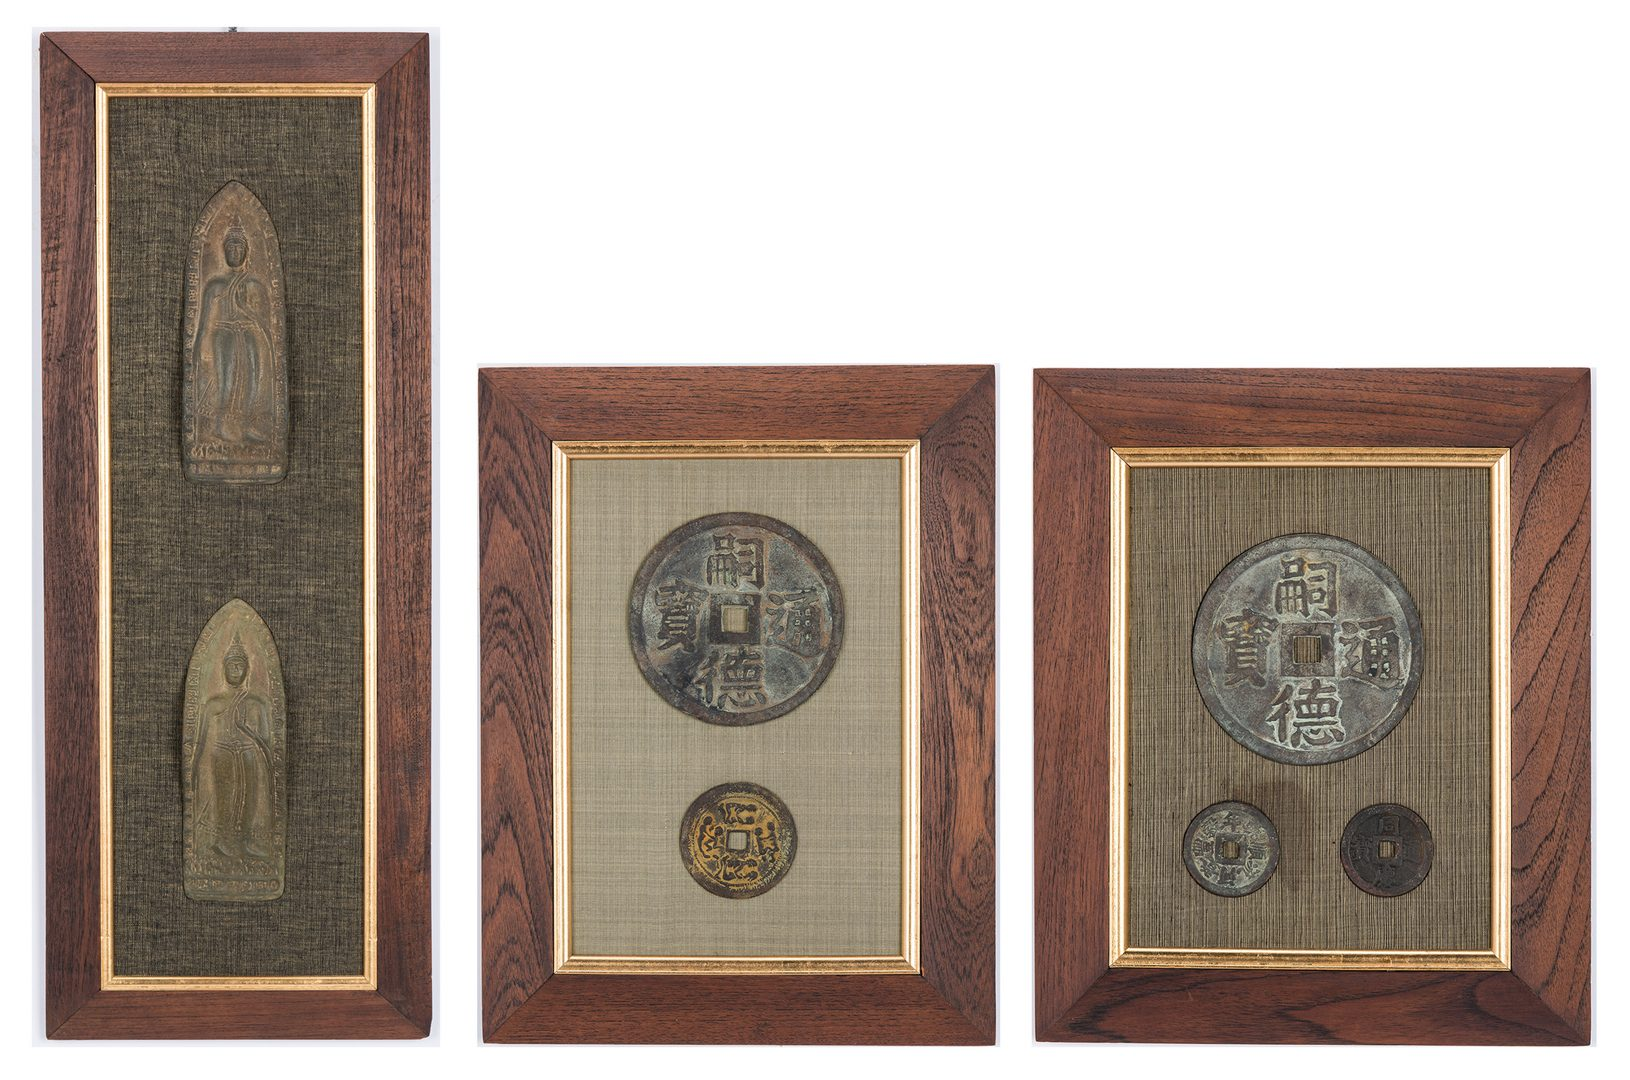 Lot 229: 4 Asian Framed Items incl. Chinese Money Objects